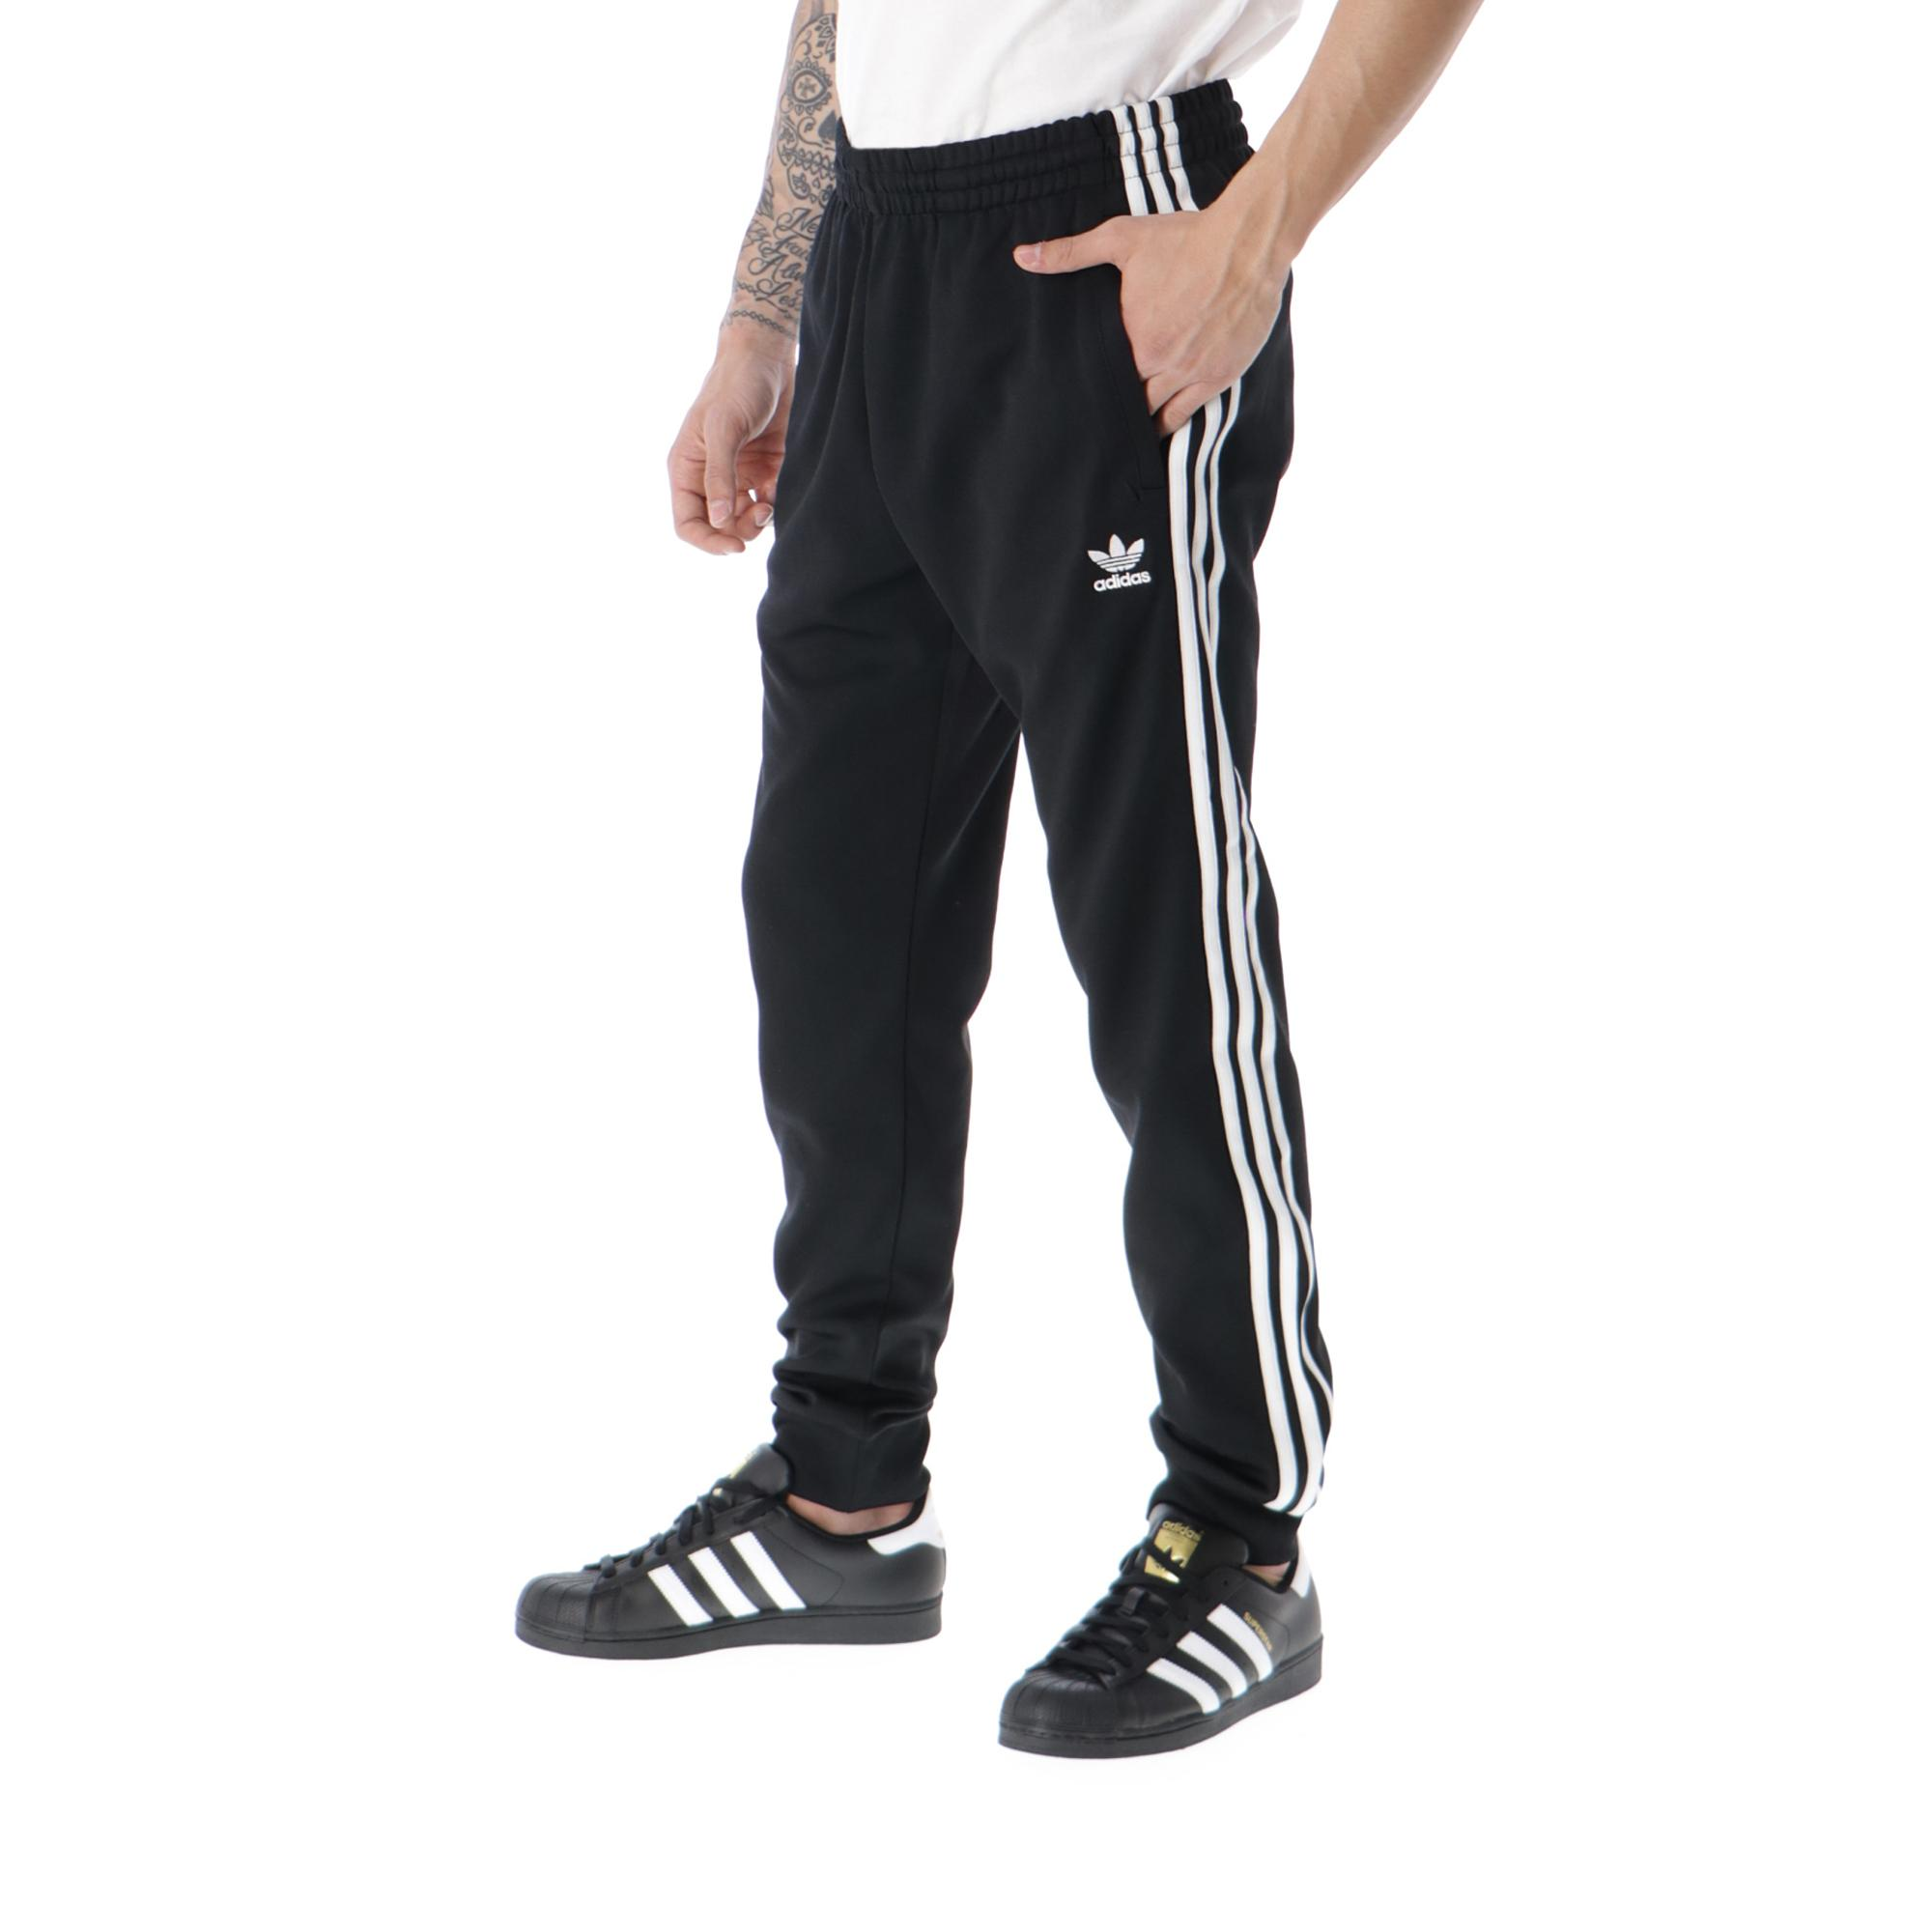 7063c5170f Adidas Sst Trackpants Black | Treesse